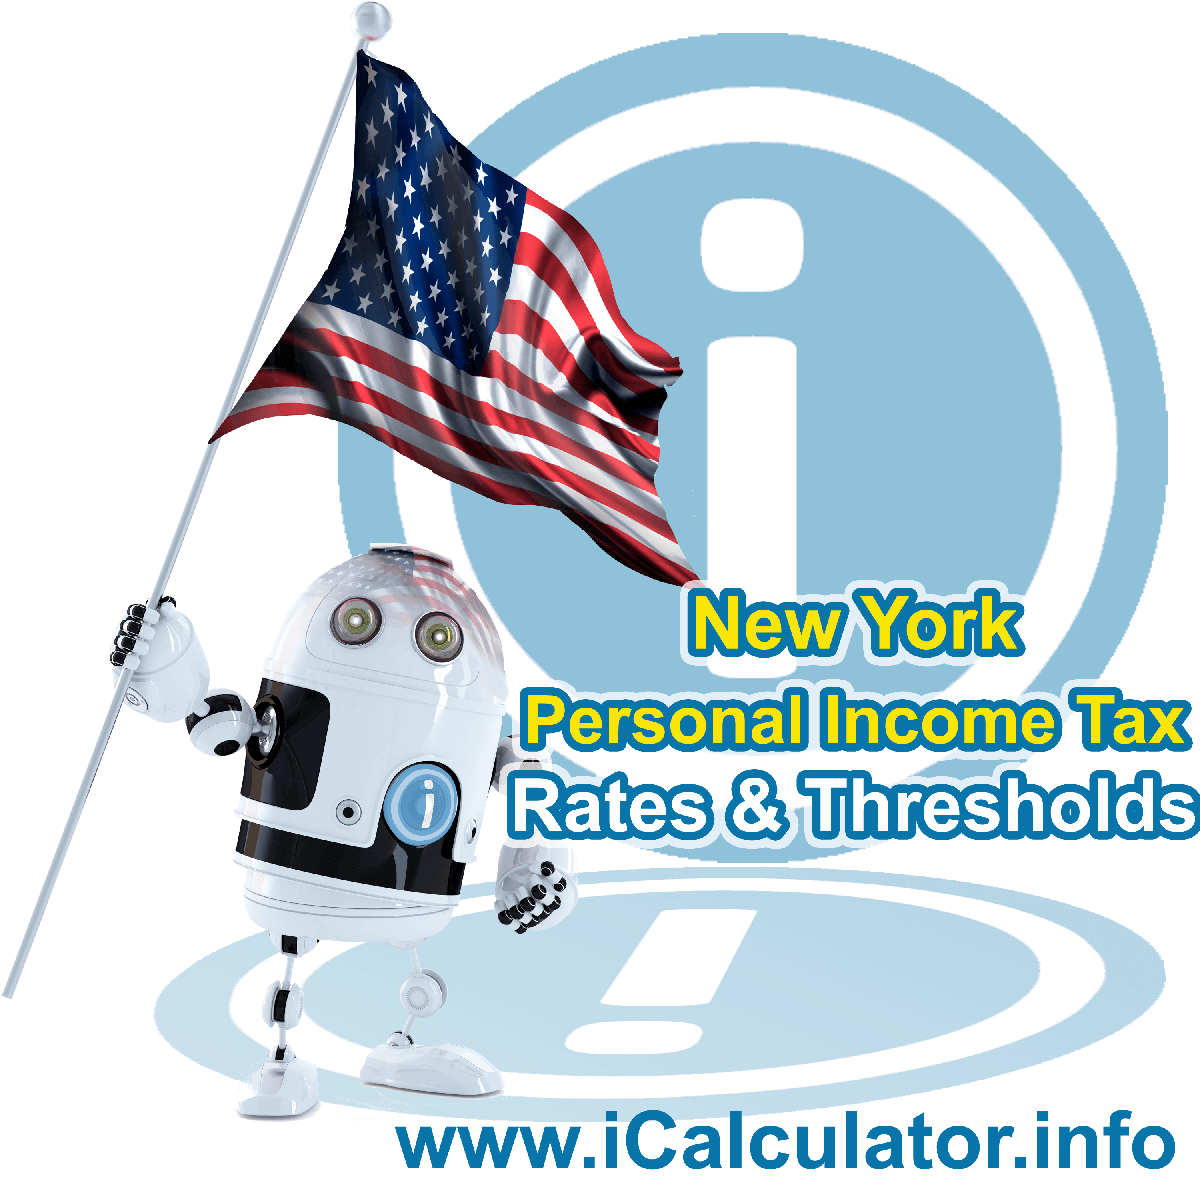 New York State Tax Tables 2018. This image displays details of the New York State Tax Tables for the 2018 tax return year which is provided in support of the 2018 US Tax Calculator